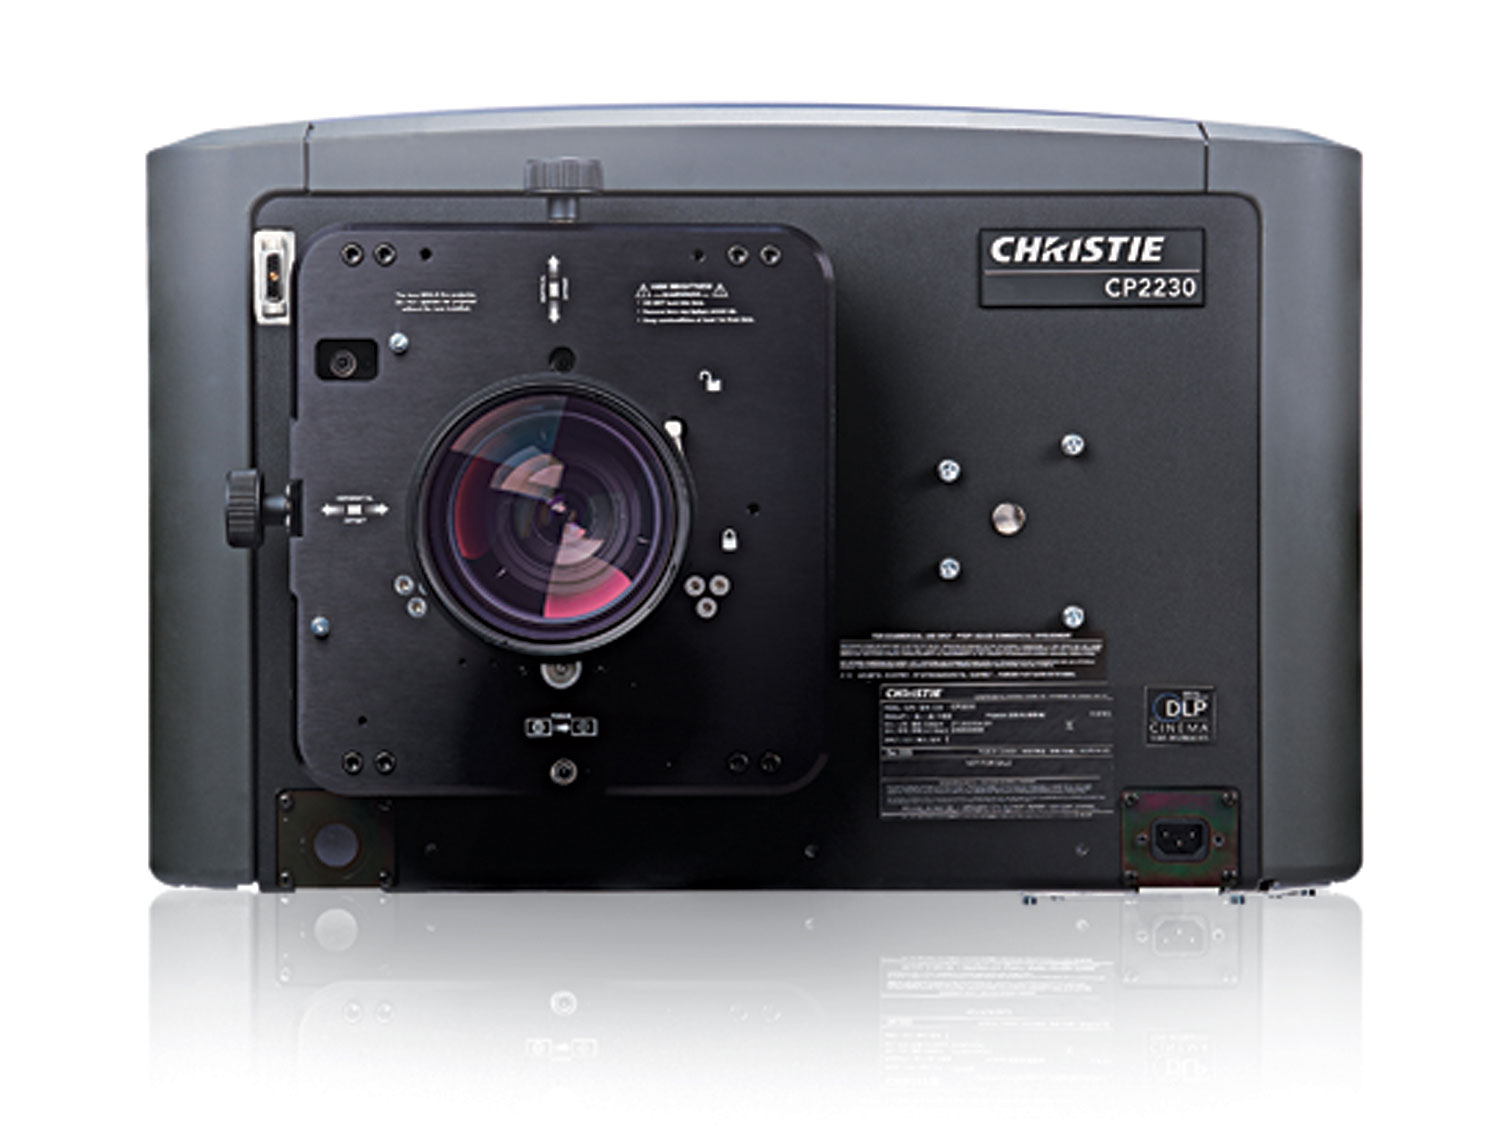 /globalassets/.catalog/products/images/christie-cp2230/gallery/christie-cp2230-digital-cinema-projector-image2.jpg